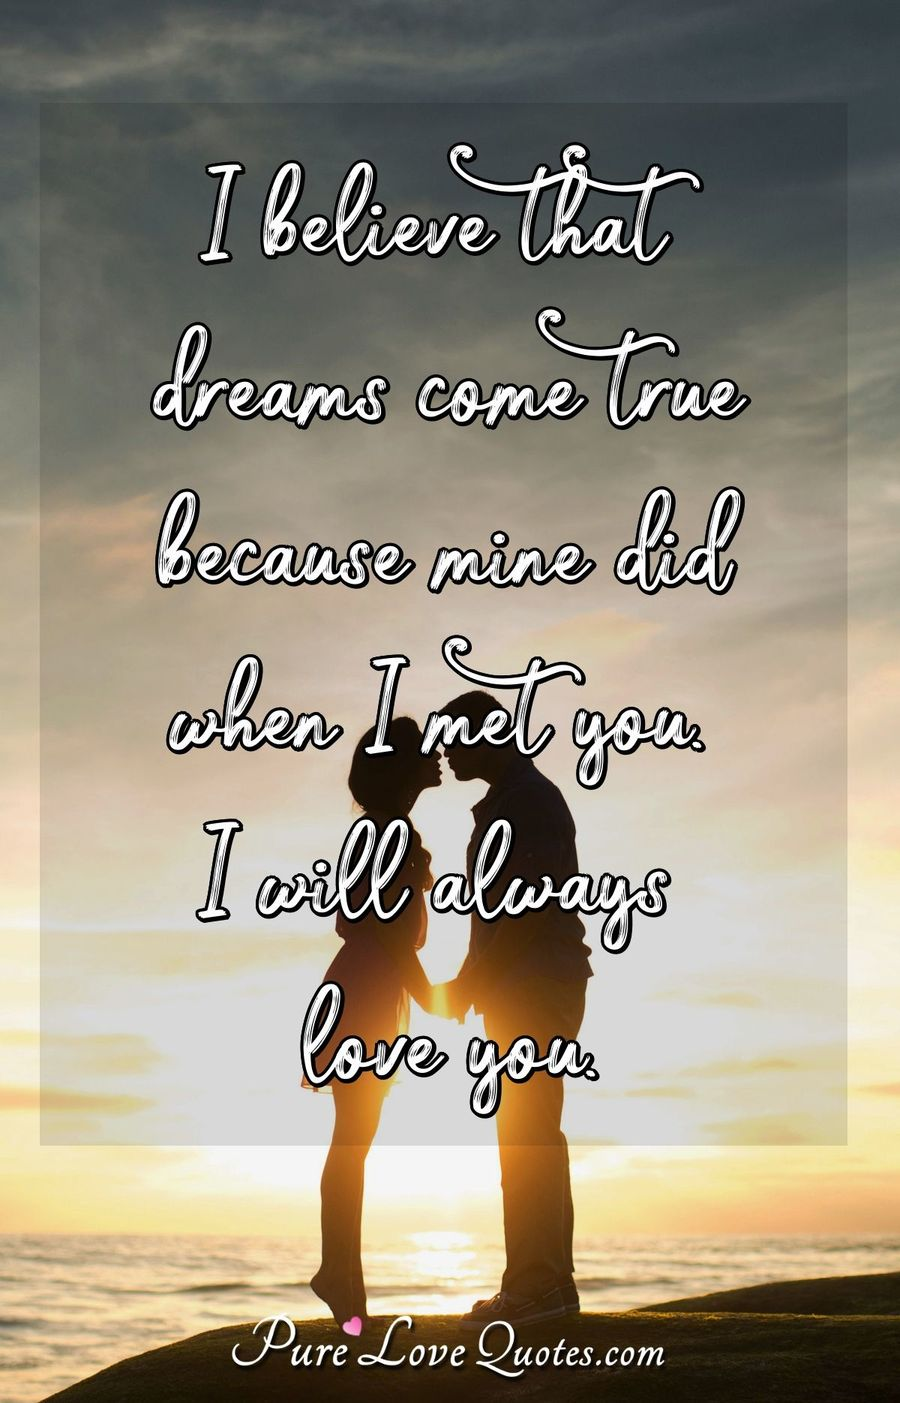 I believe that dreams come true because mine did when I met you. I will always love you. - Anonymous